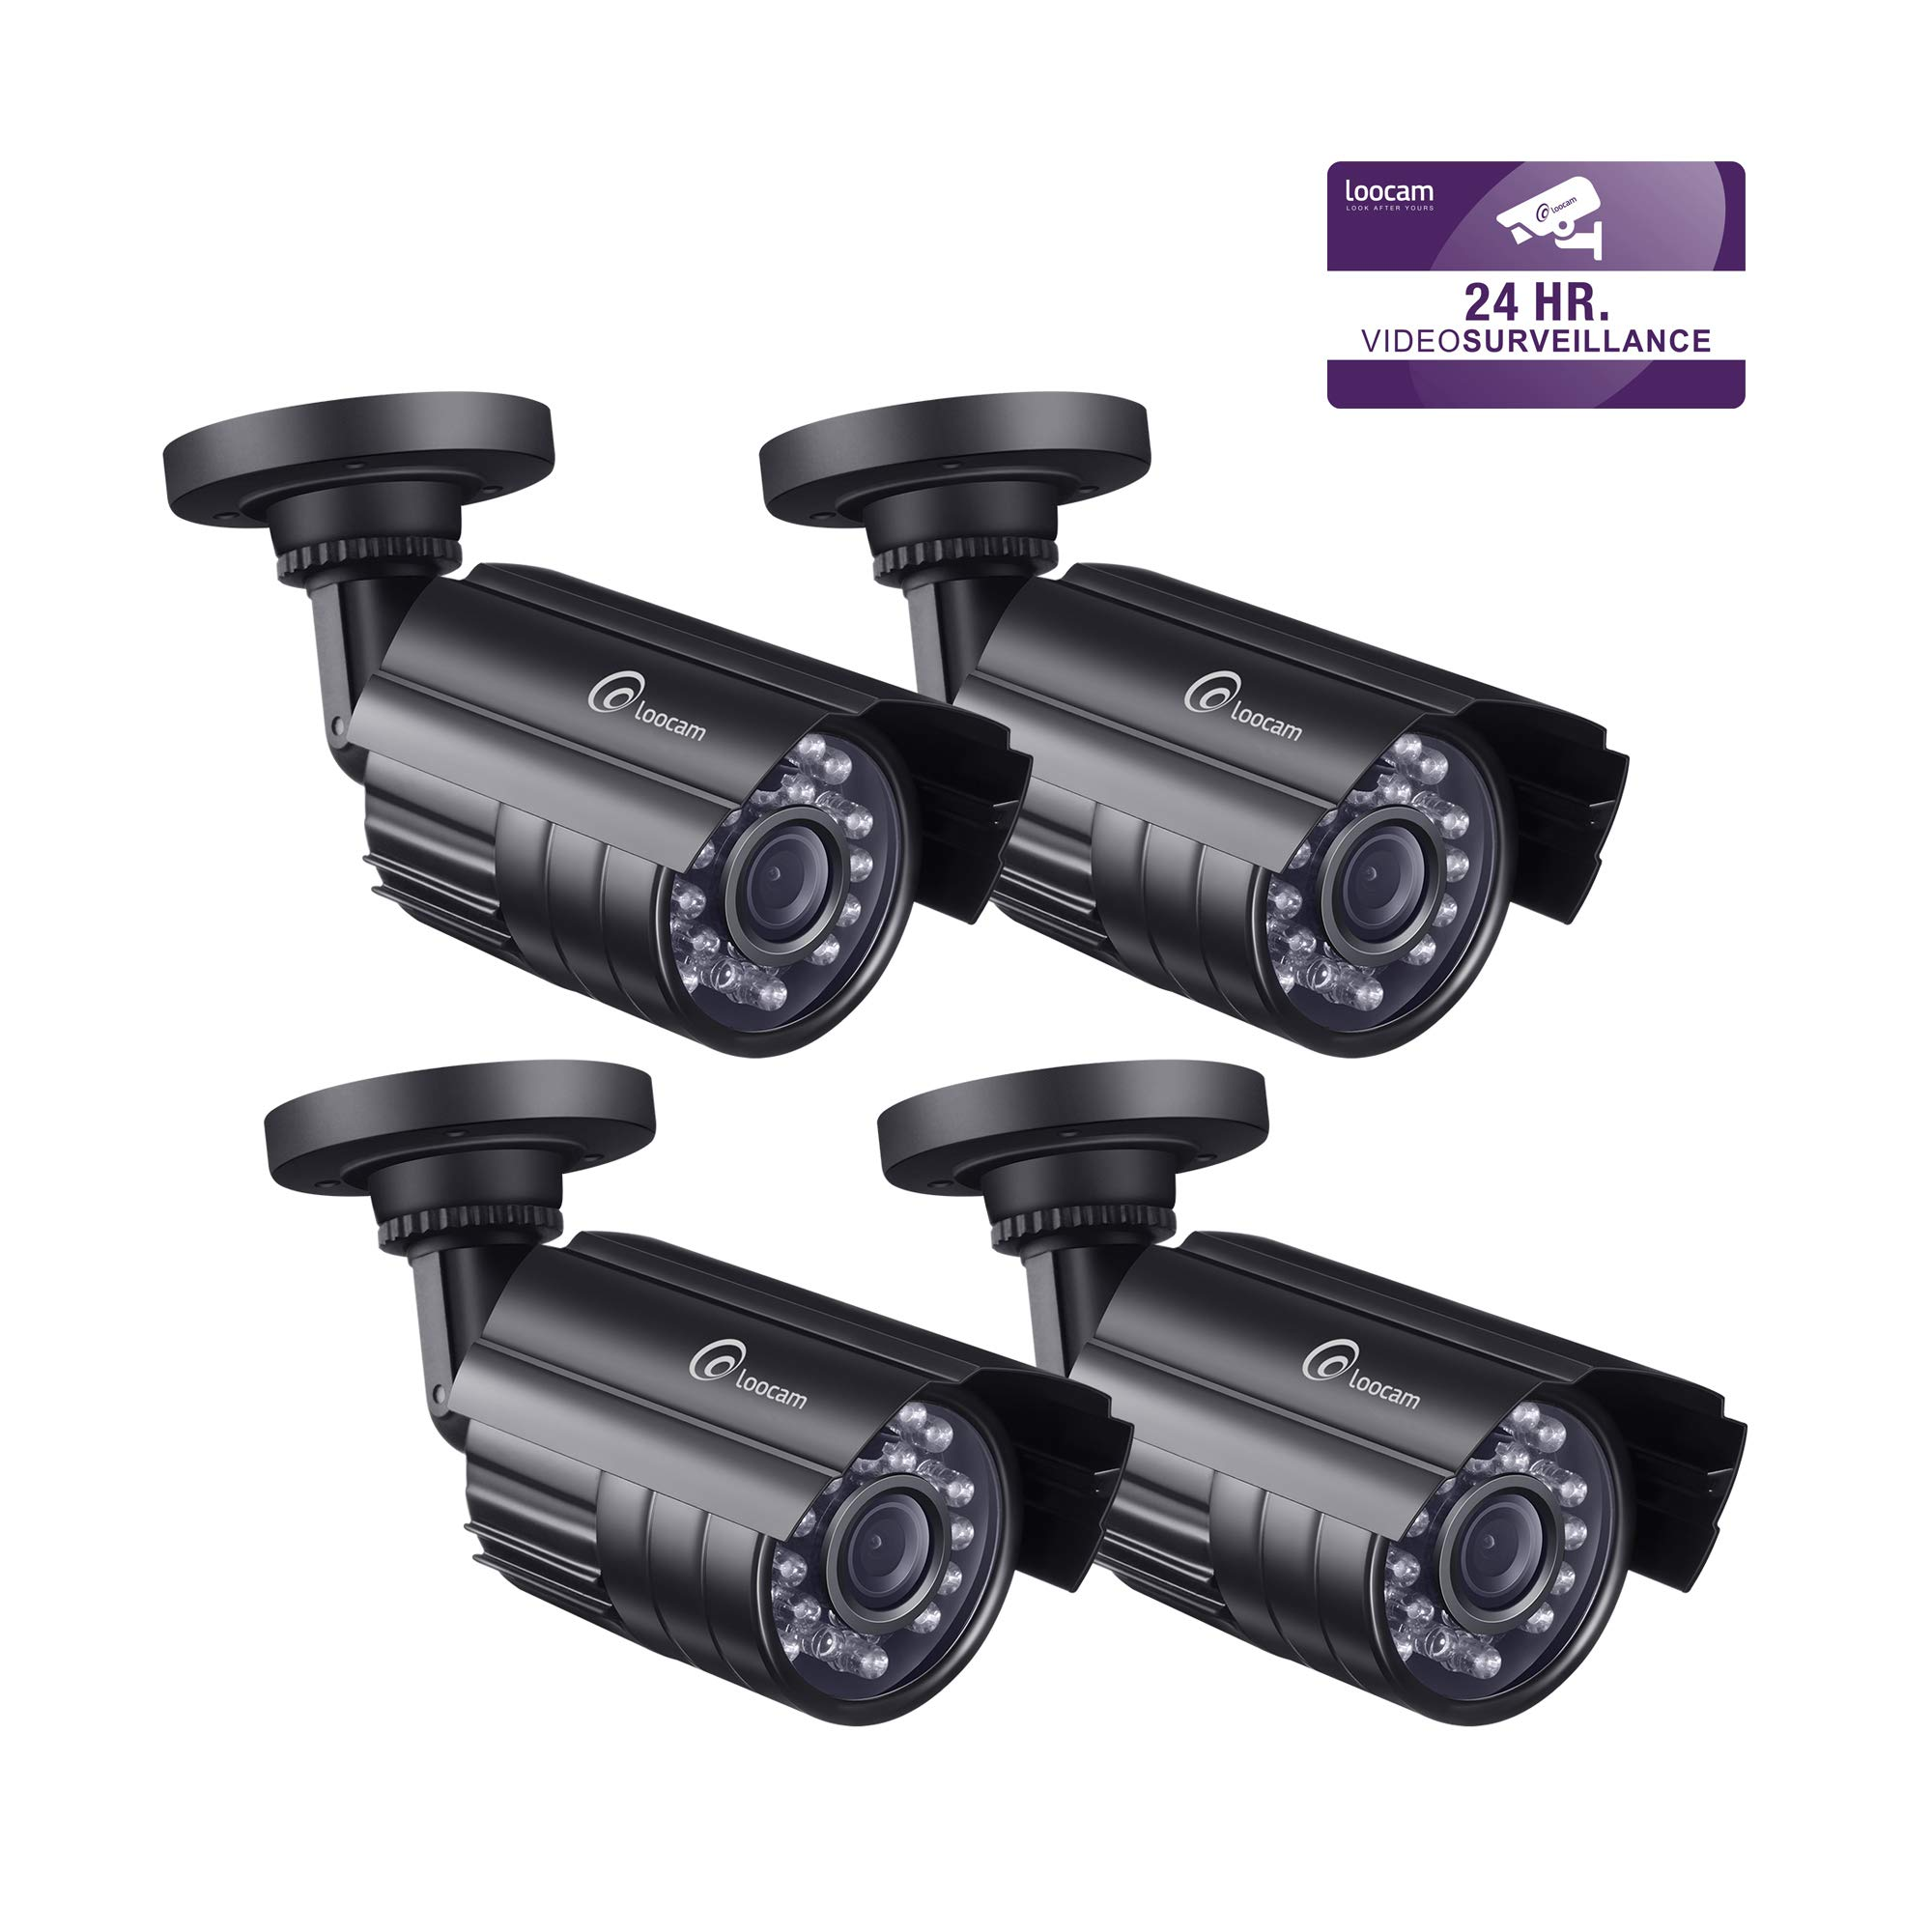 Loocam Fake Security Camera Imitation Bullet Surveillance Camera with Decoy Blinking Red LED Indoor and Outdoor for Home and Business(4 Pack) by Loocam